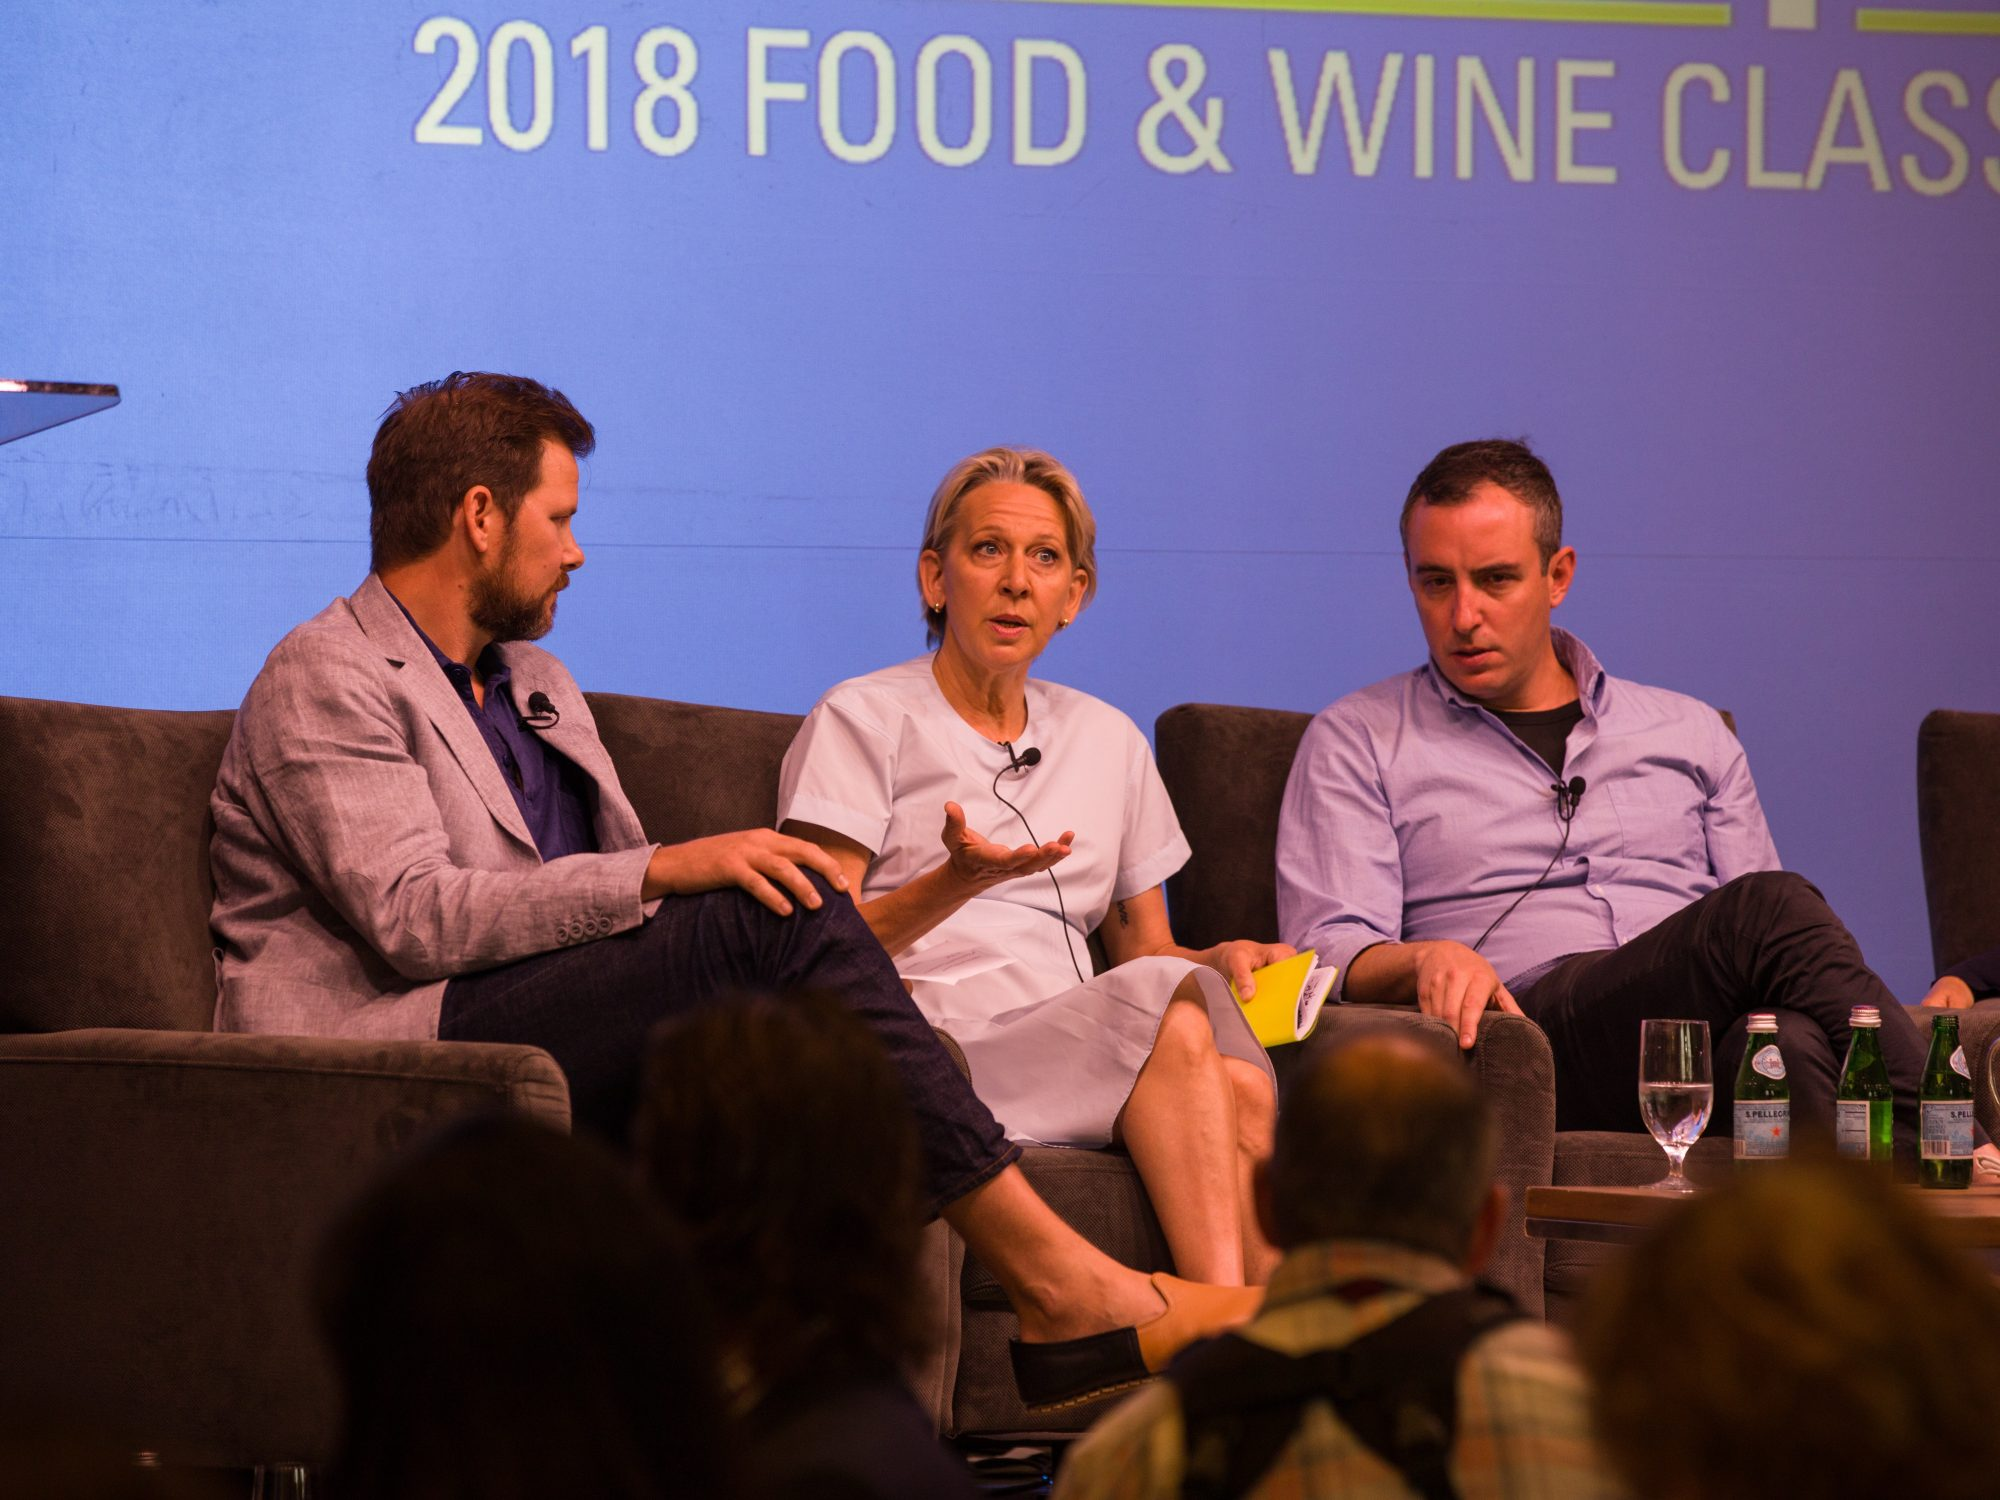 Gabrielle Hamilton Defends Ken Friedman Partnership: 'He's Not Coming to Work at the Spotted Pig Tomorrow'